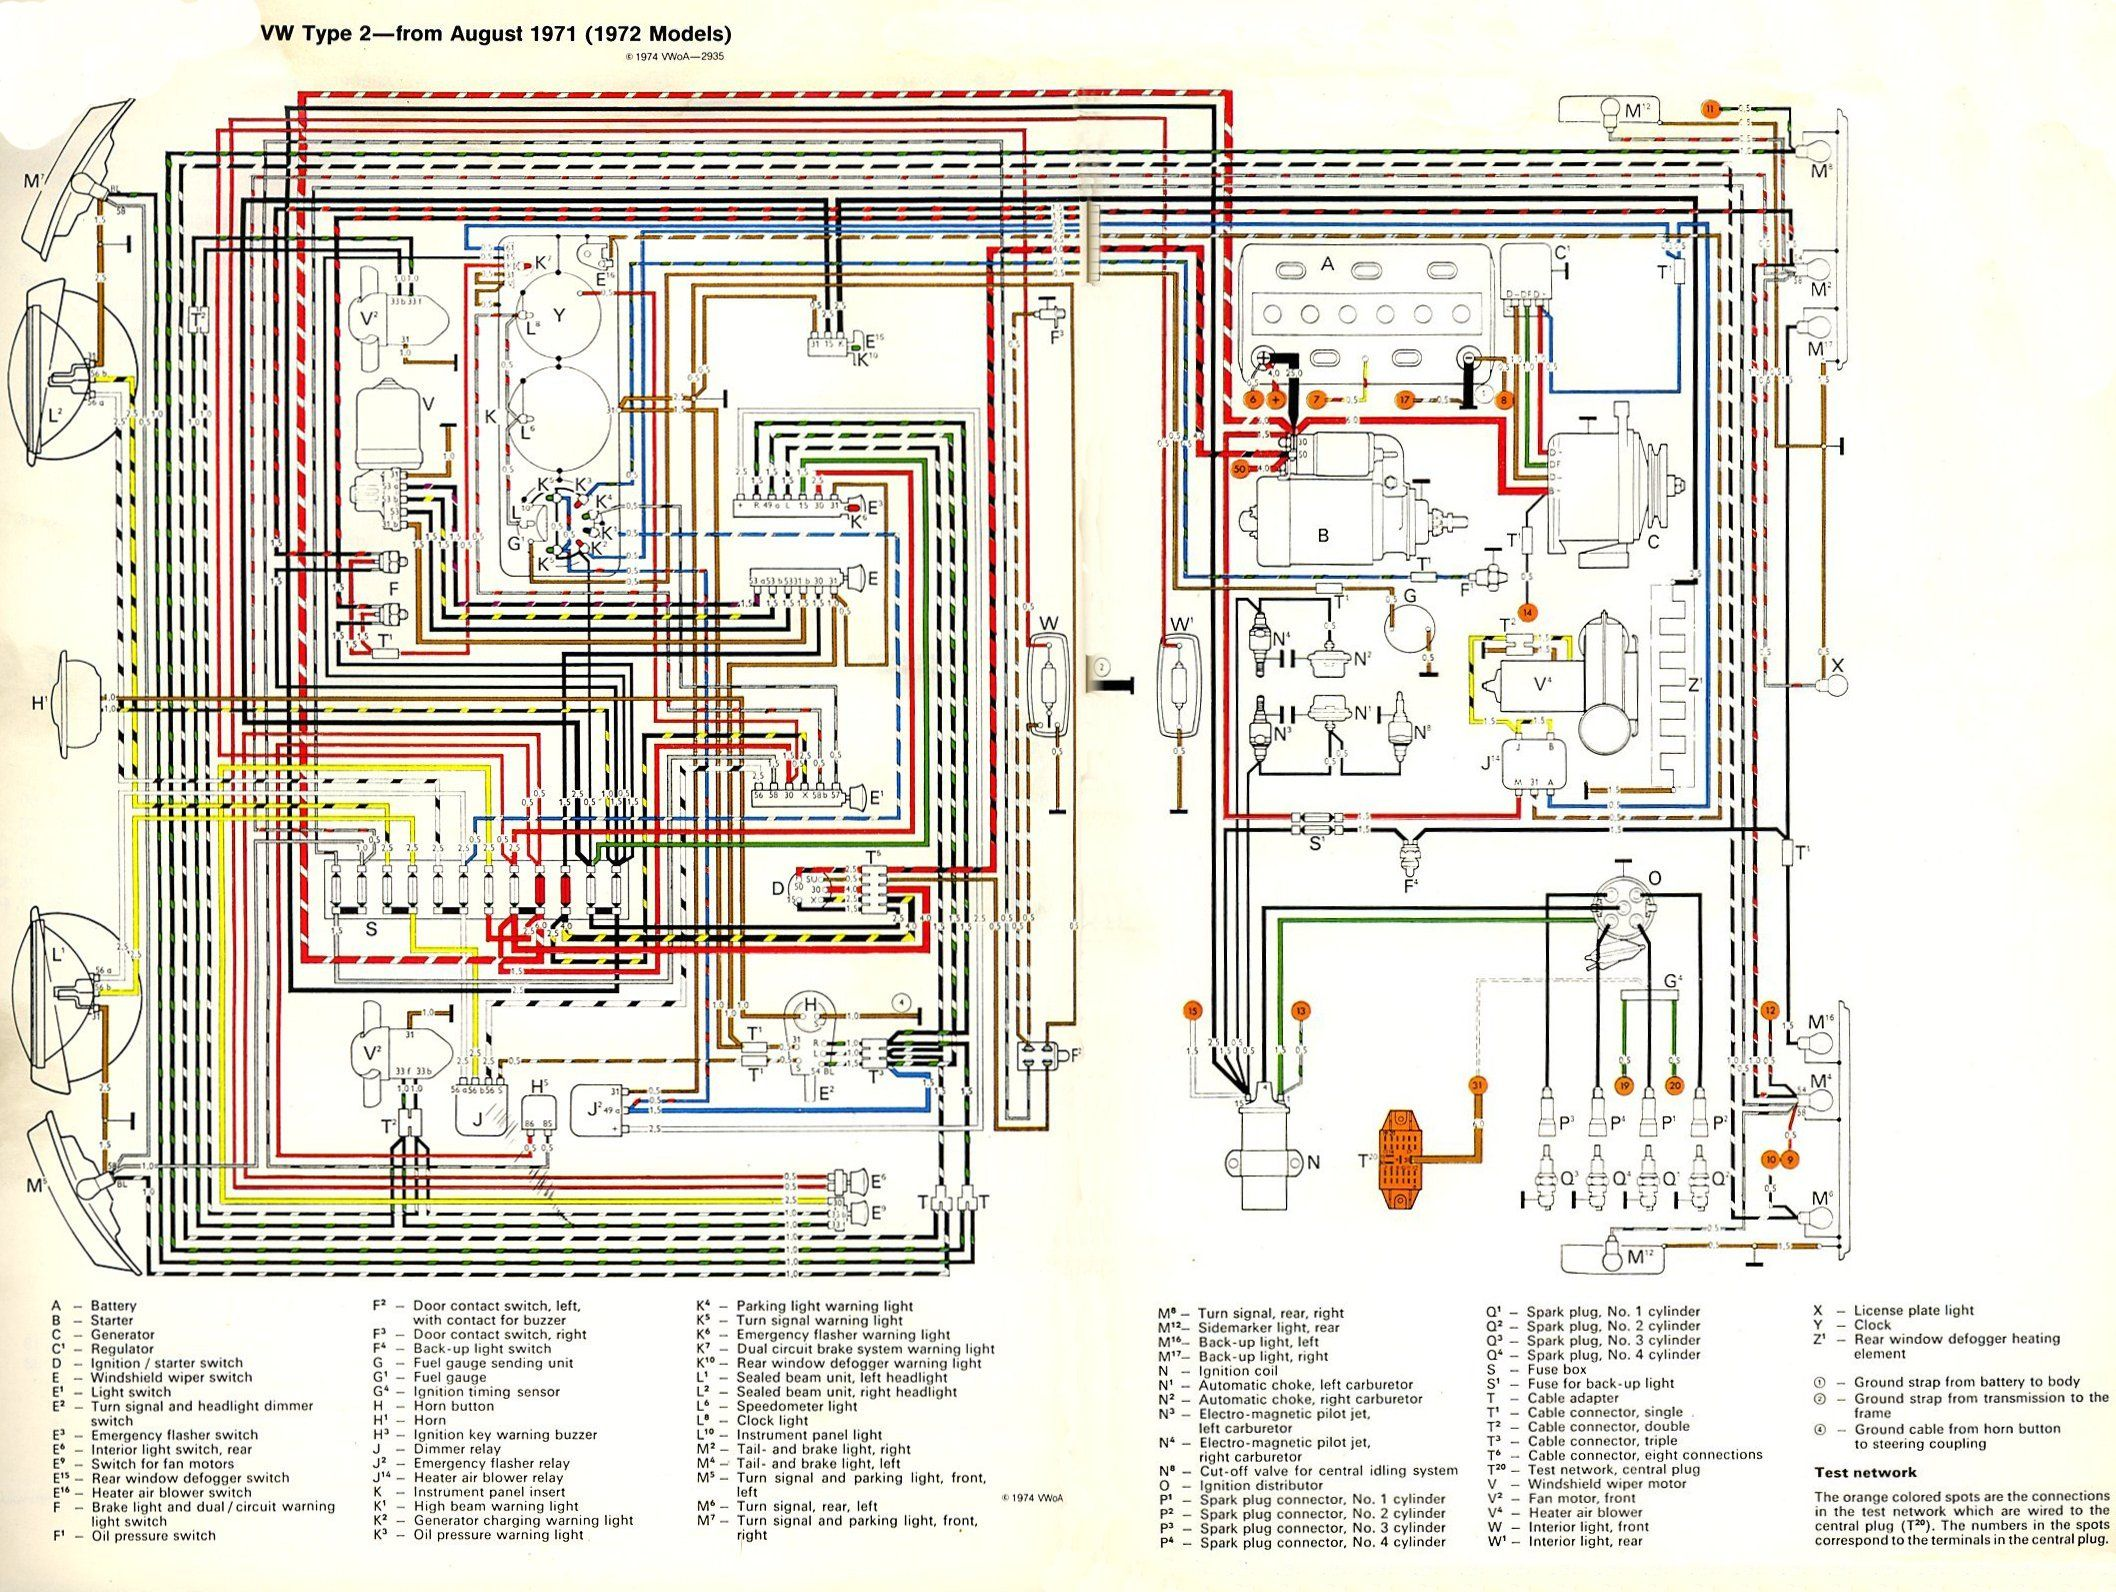 wiring diagram kombi camper explore kombi camper vw bus and more wiring diagram